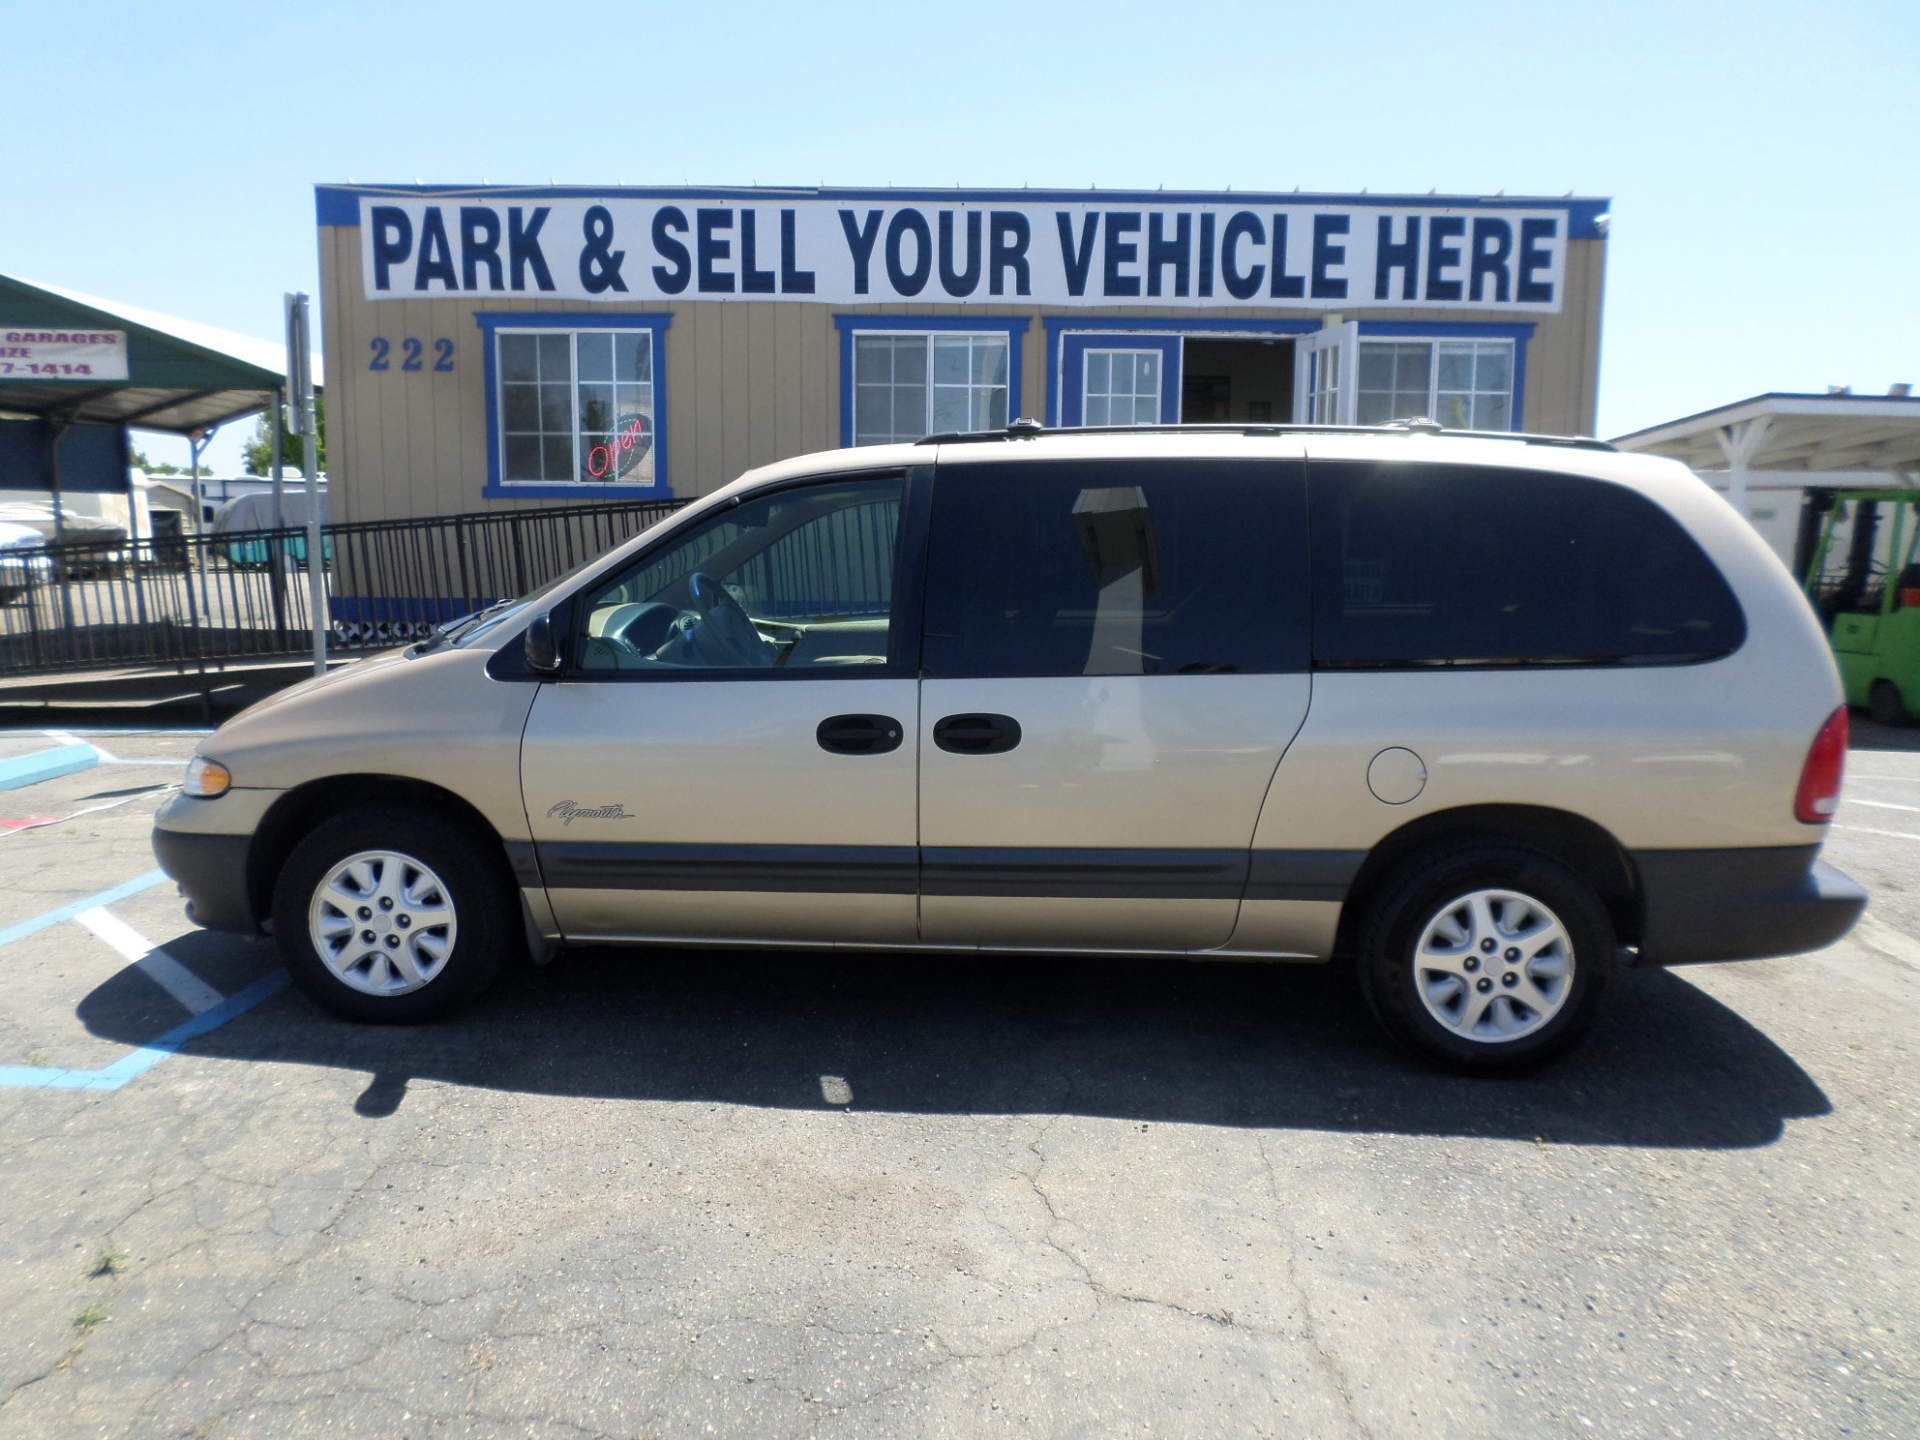 van for sale 1998 plymouth grand voyager in lodi stockton ca lodi park and sell lodi park and sell